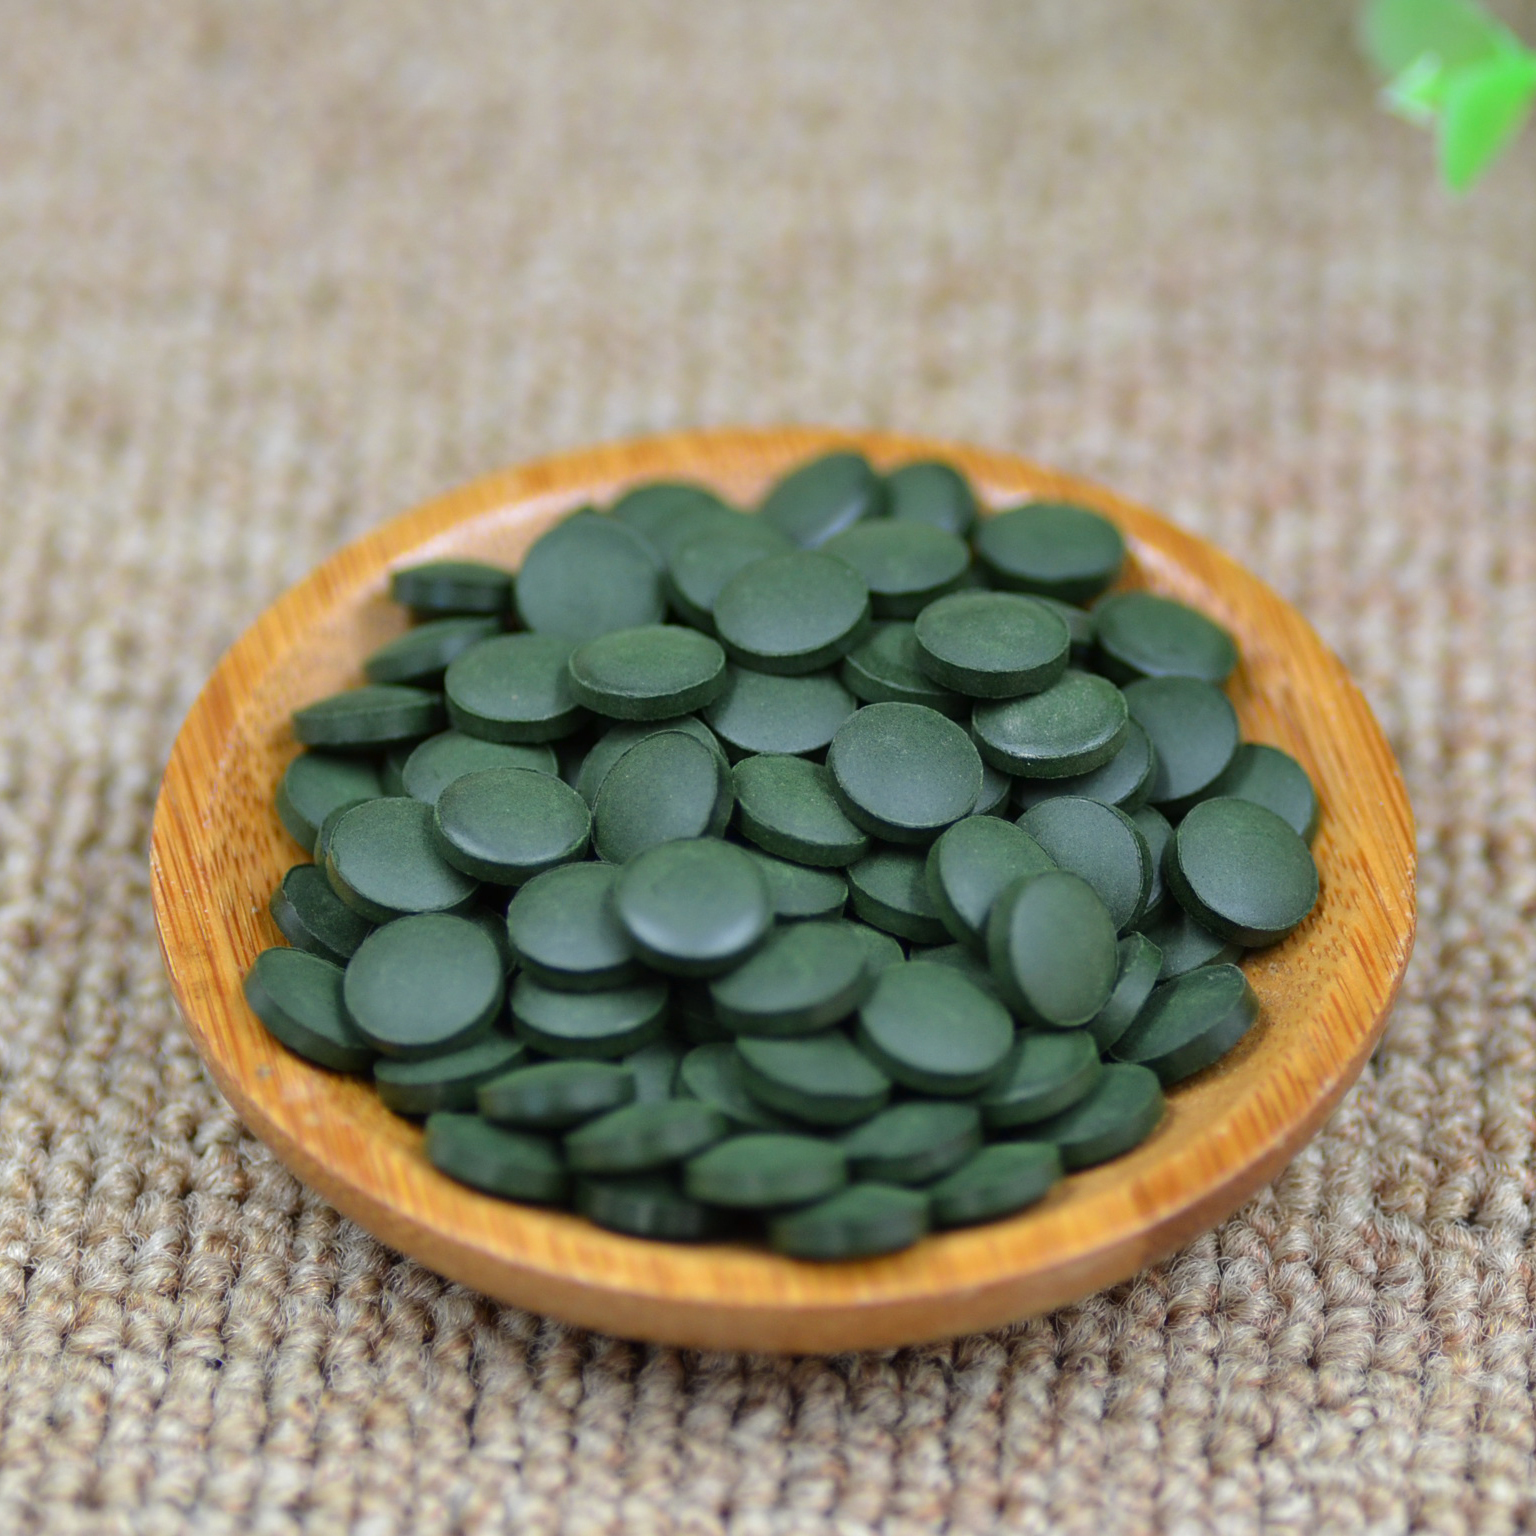 100% Chinese Yunnan Green Organic Spirulina Natural Tea Pills Anti-fatigue Enhance-immune Slim Spirulina Tablet